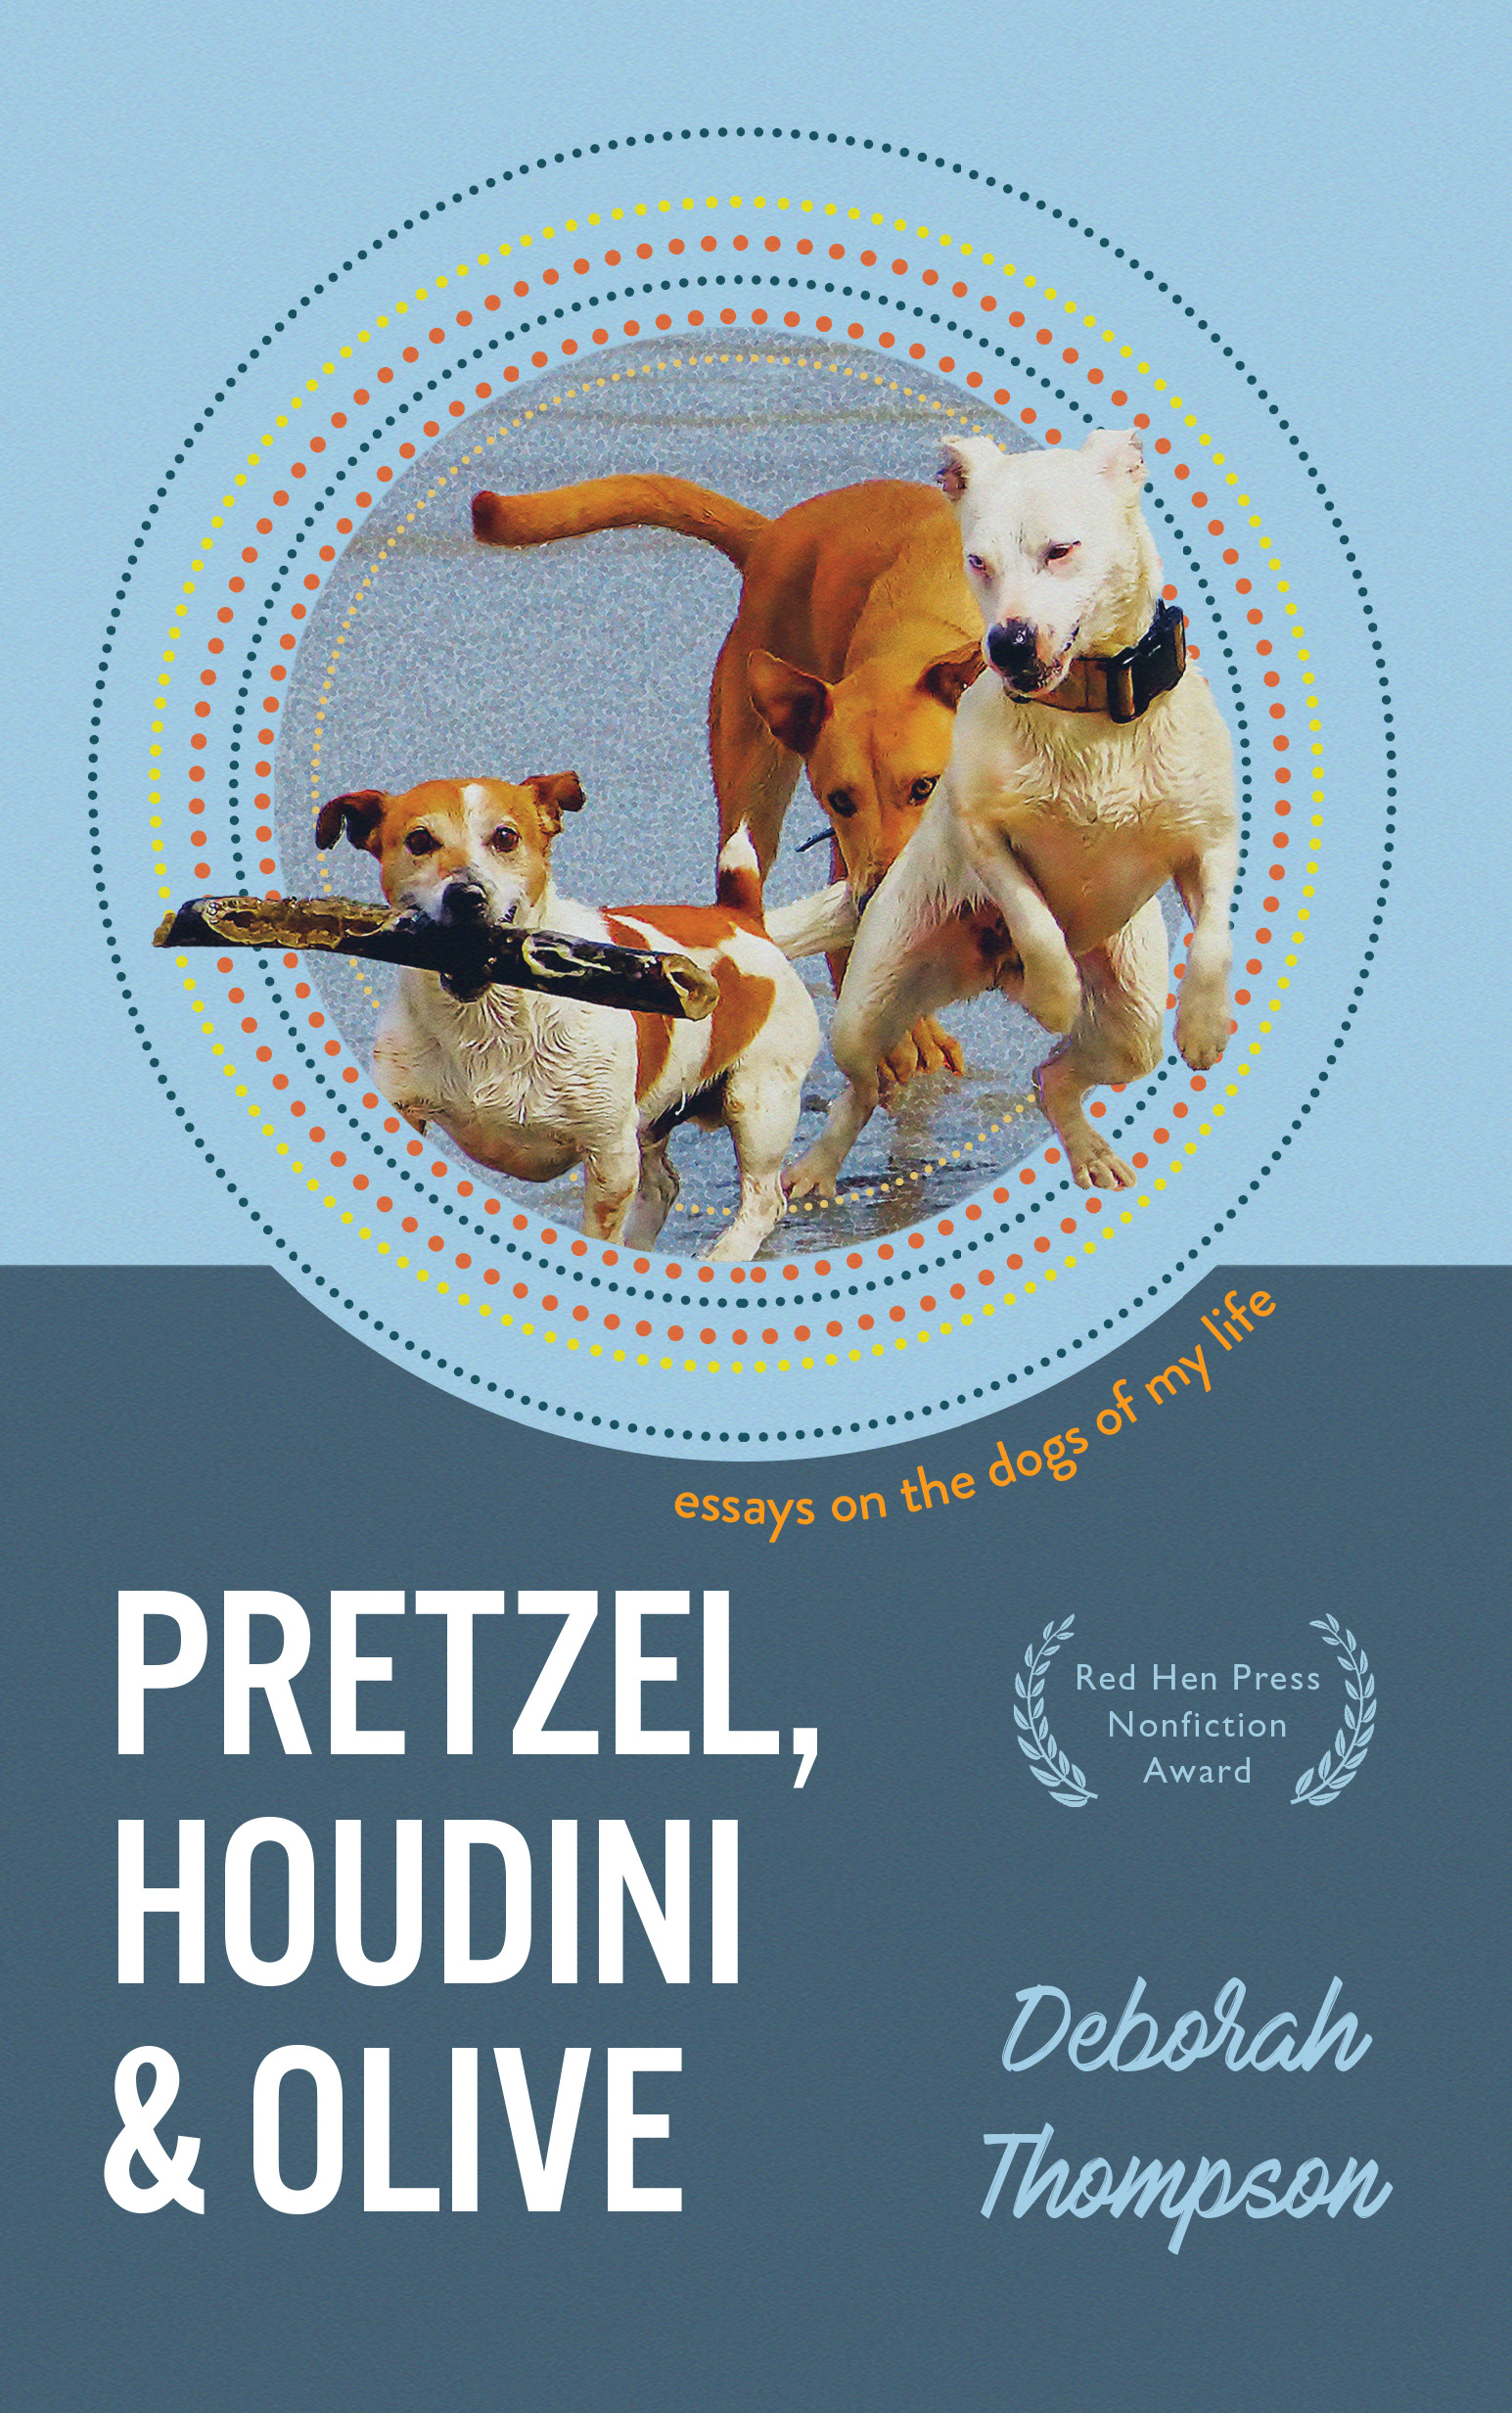 A blue cover with three dogs in the middle and white script at the bottom that reads Pretzel Houdini and Olive essays of the dogs of my life by Deborah Thompson.